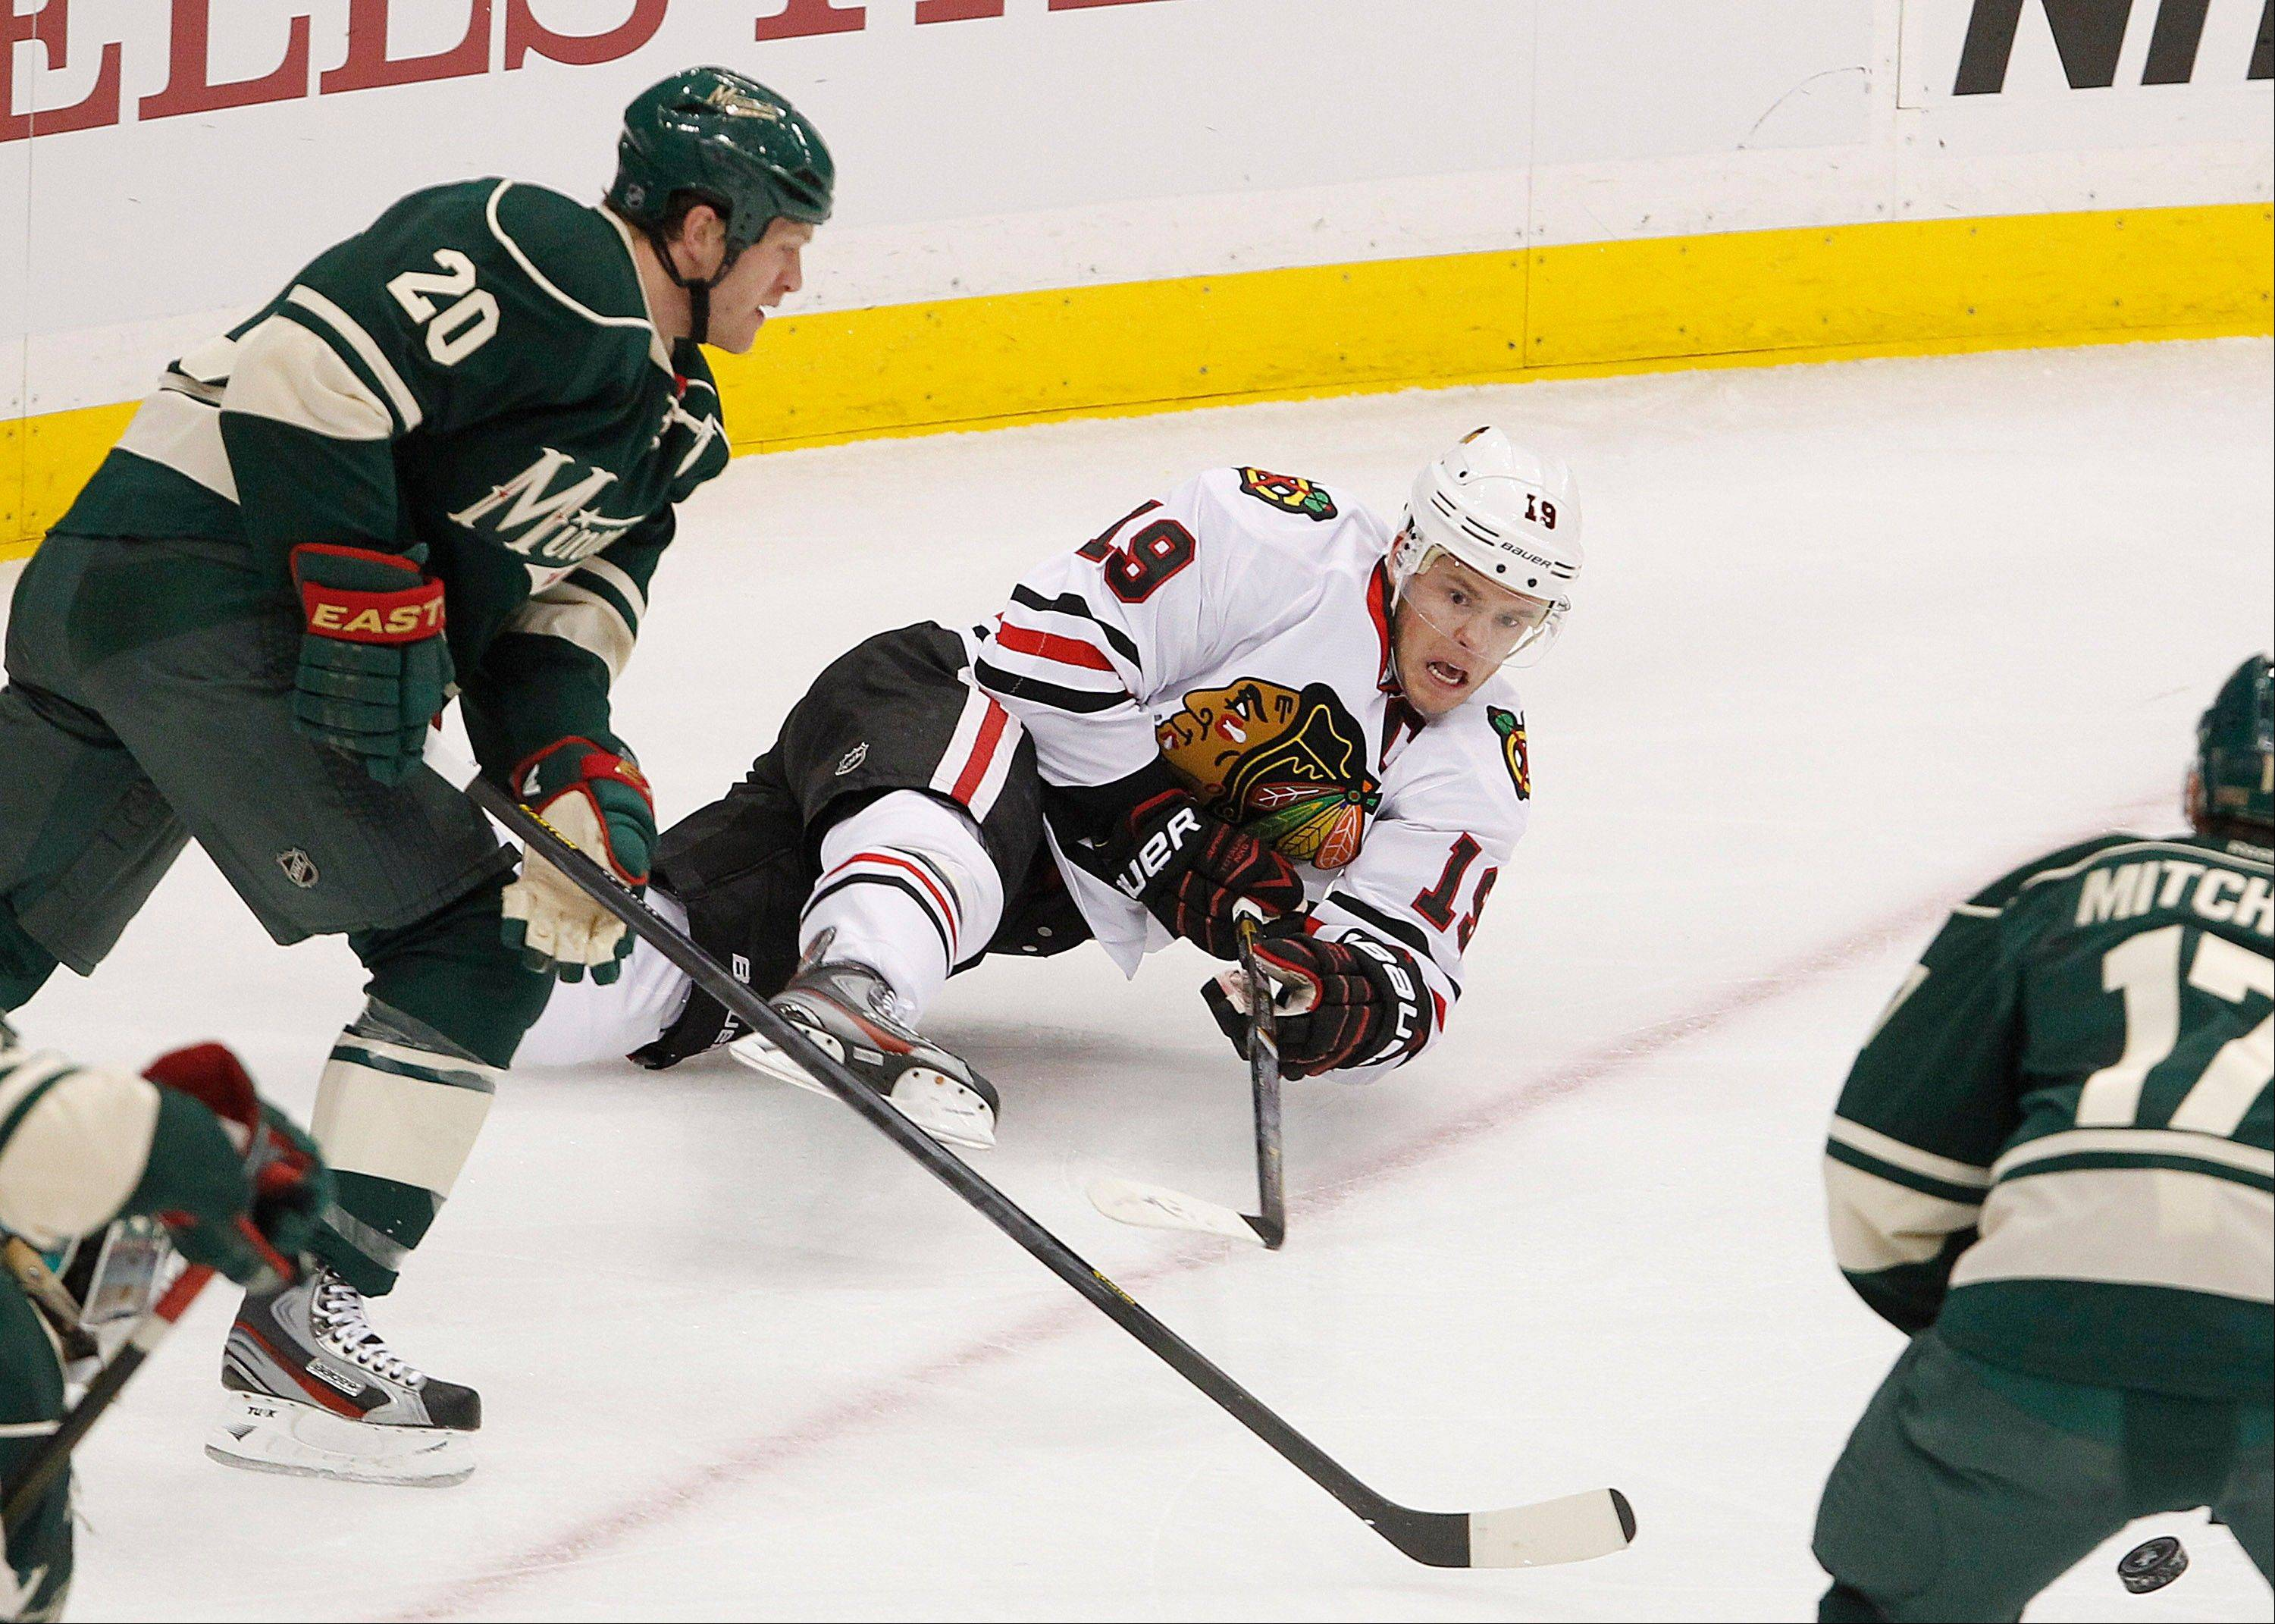 Blackhawks captain Jonathan Toews shoots as he falls in front of Minnesota defenseman Ryan Suter in Sunday�s first period of Game 3 in the teams� first-round playoff series.